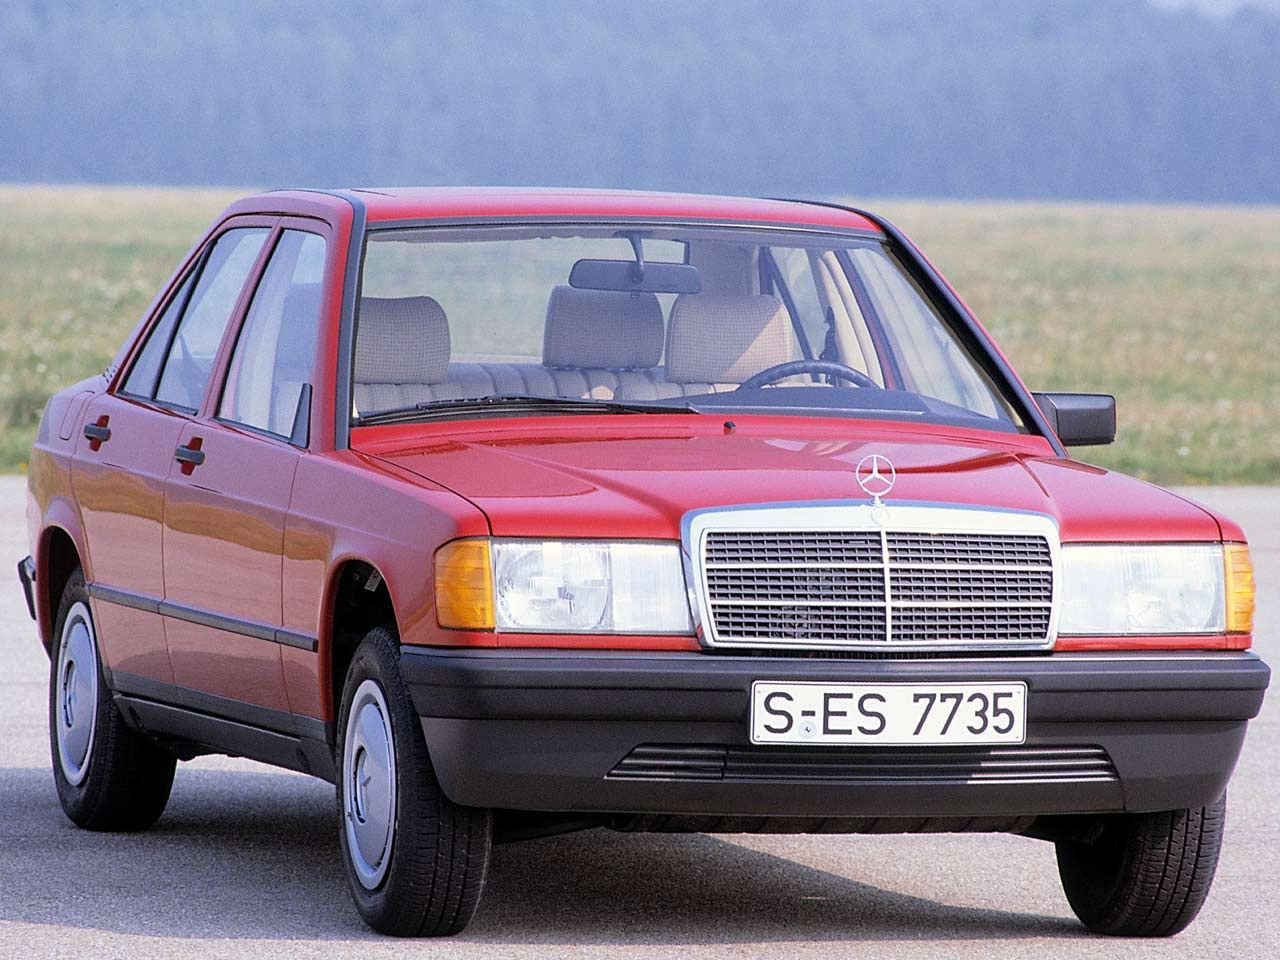 25 jahre mercedes 190e. Black Bedroom Furniture Sets. Home Design Ideas